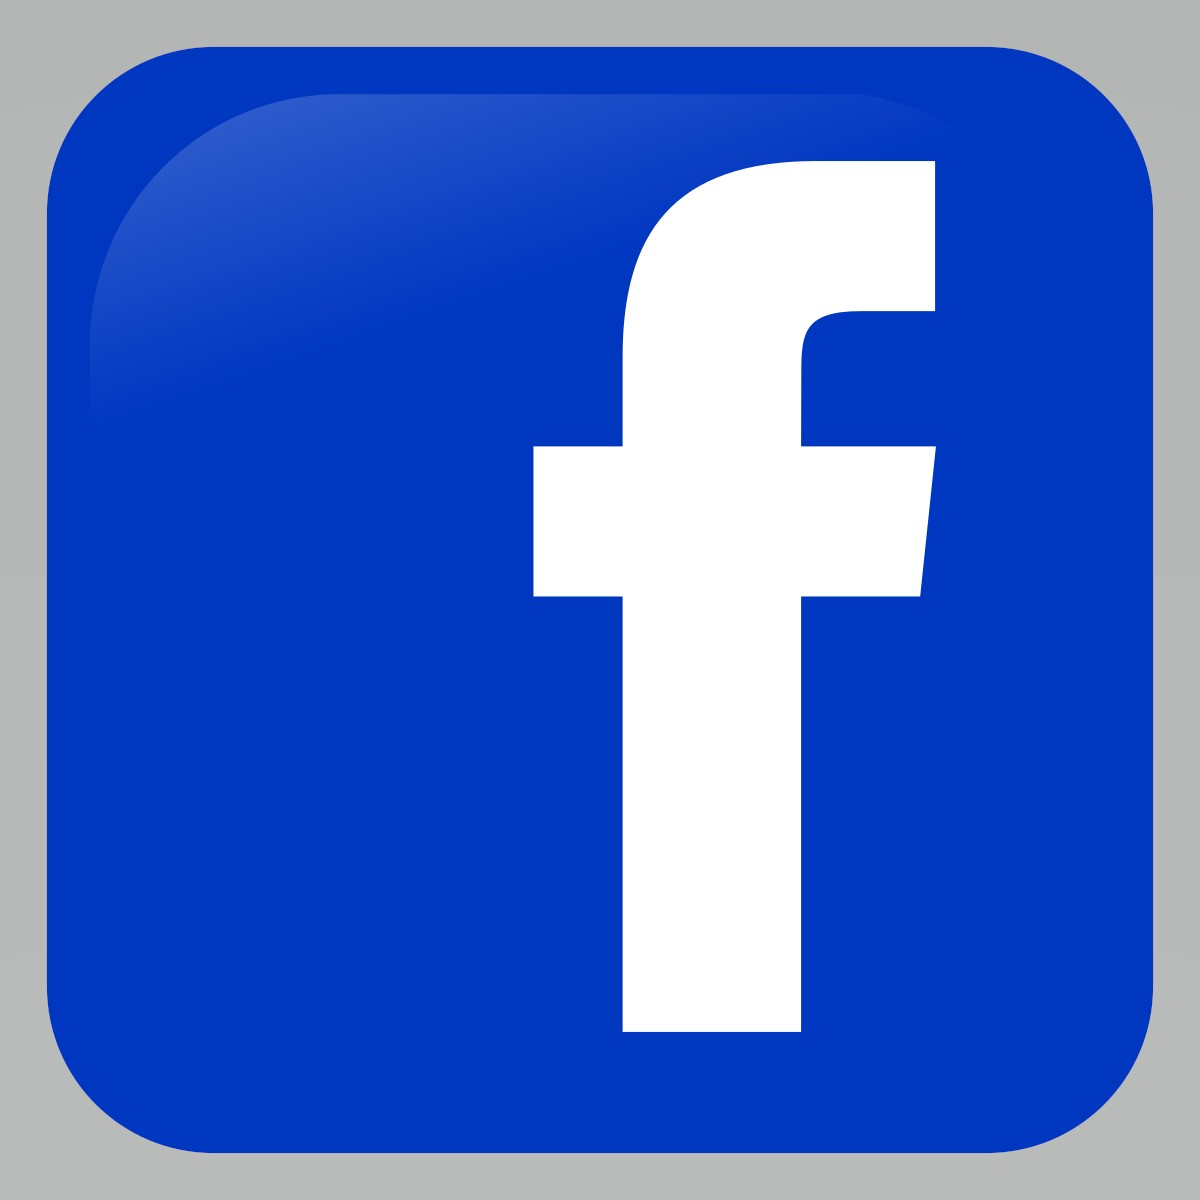 Facebook App Review: Latest Features & Their Benefits Revisited